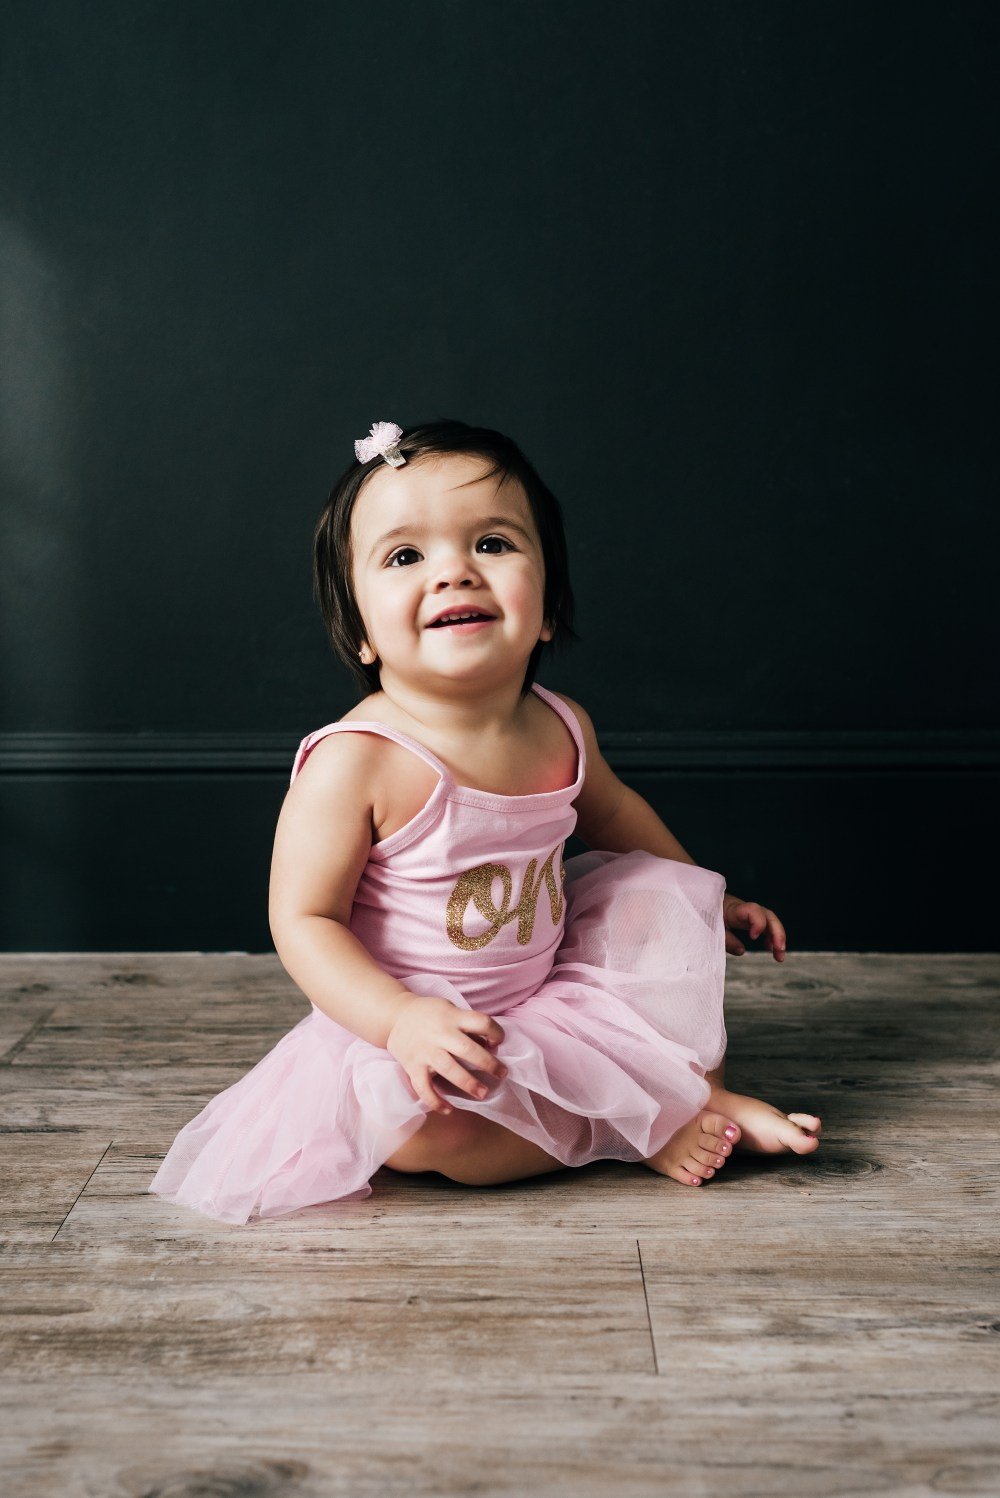 Our sweet Tatum Olivia is now ONE! Baby girl has grown so much and time has flown by! We are blessed and thankful that she is a part of our family! Here are some of her first birthday photos! #trulydestiny #firstbirthday #birthdayphotos #birthdayphotoshoot #birthdayoutfit #babyfashion